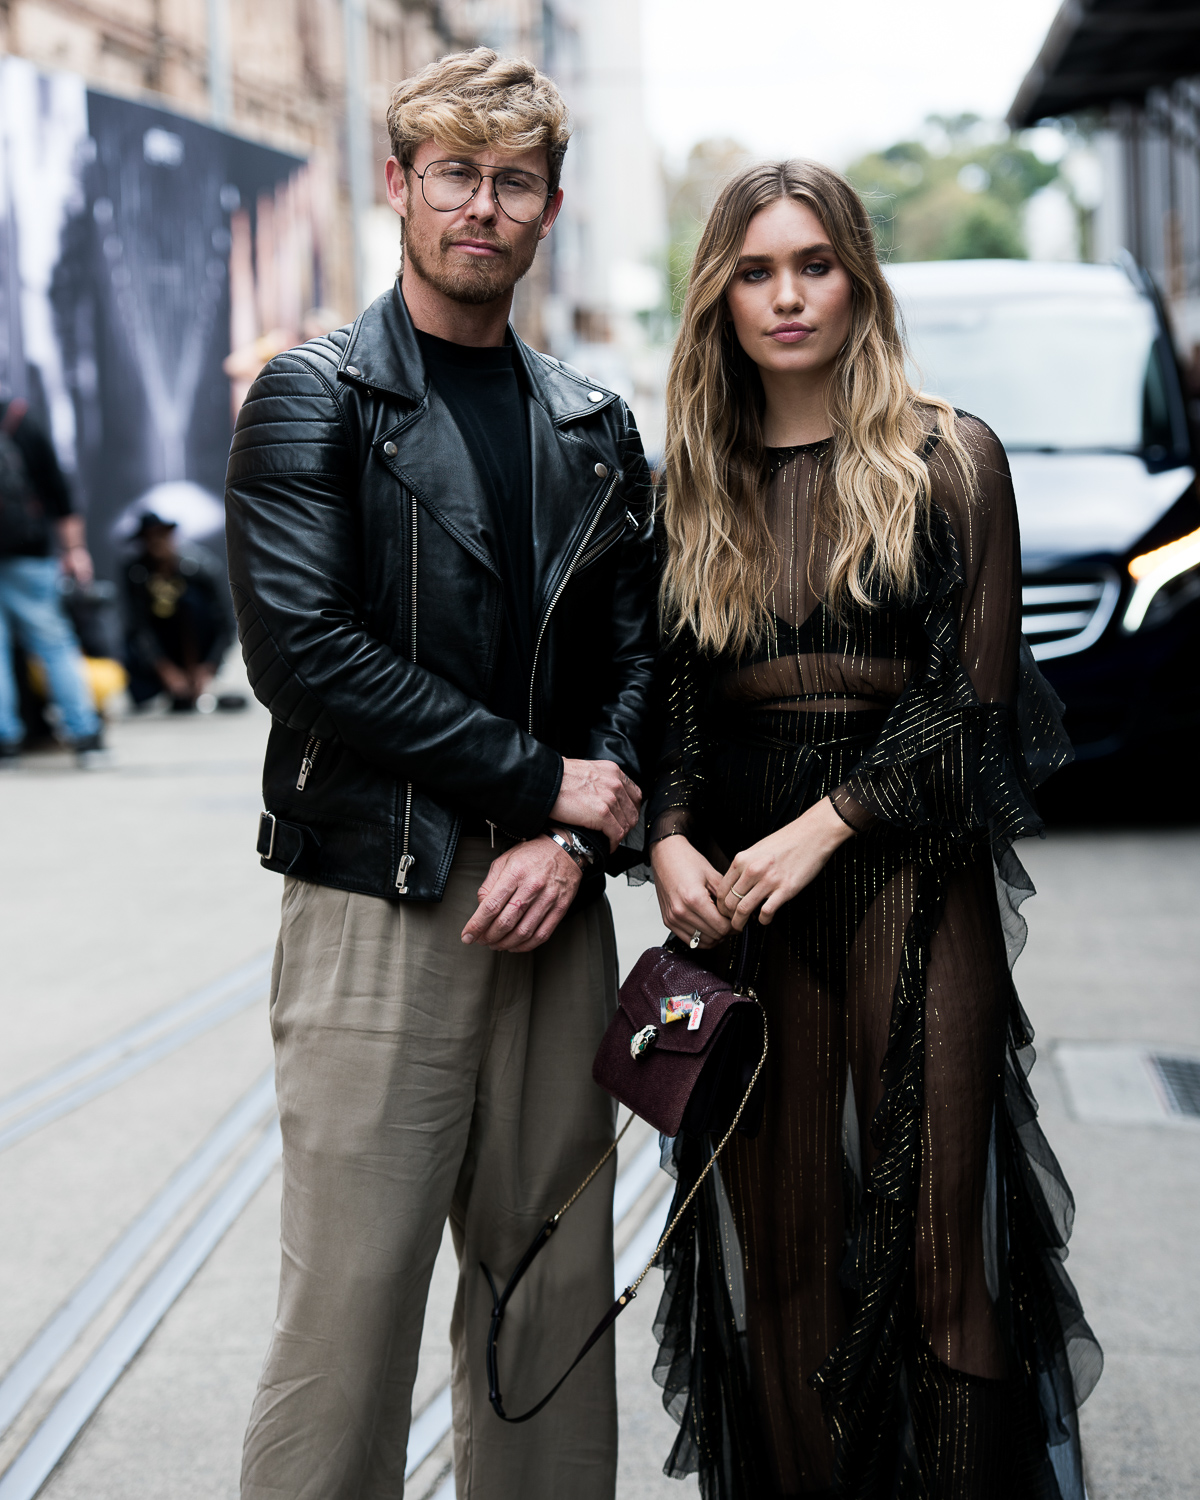 Max May @maxmade & Zoe Cross @crossandbone on their way to the Alice McCall show.